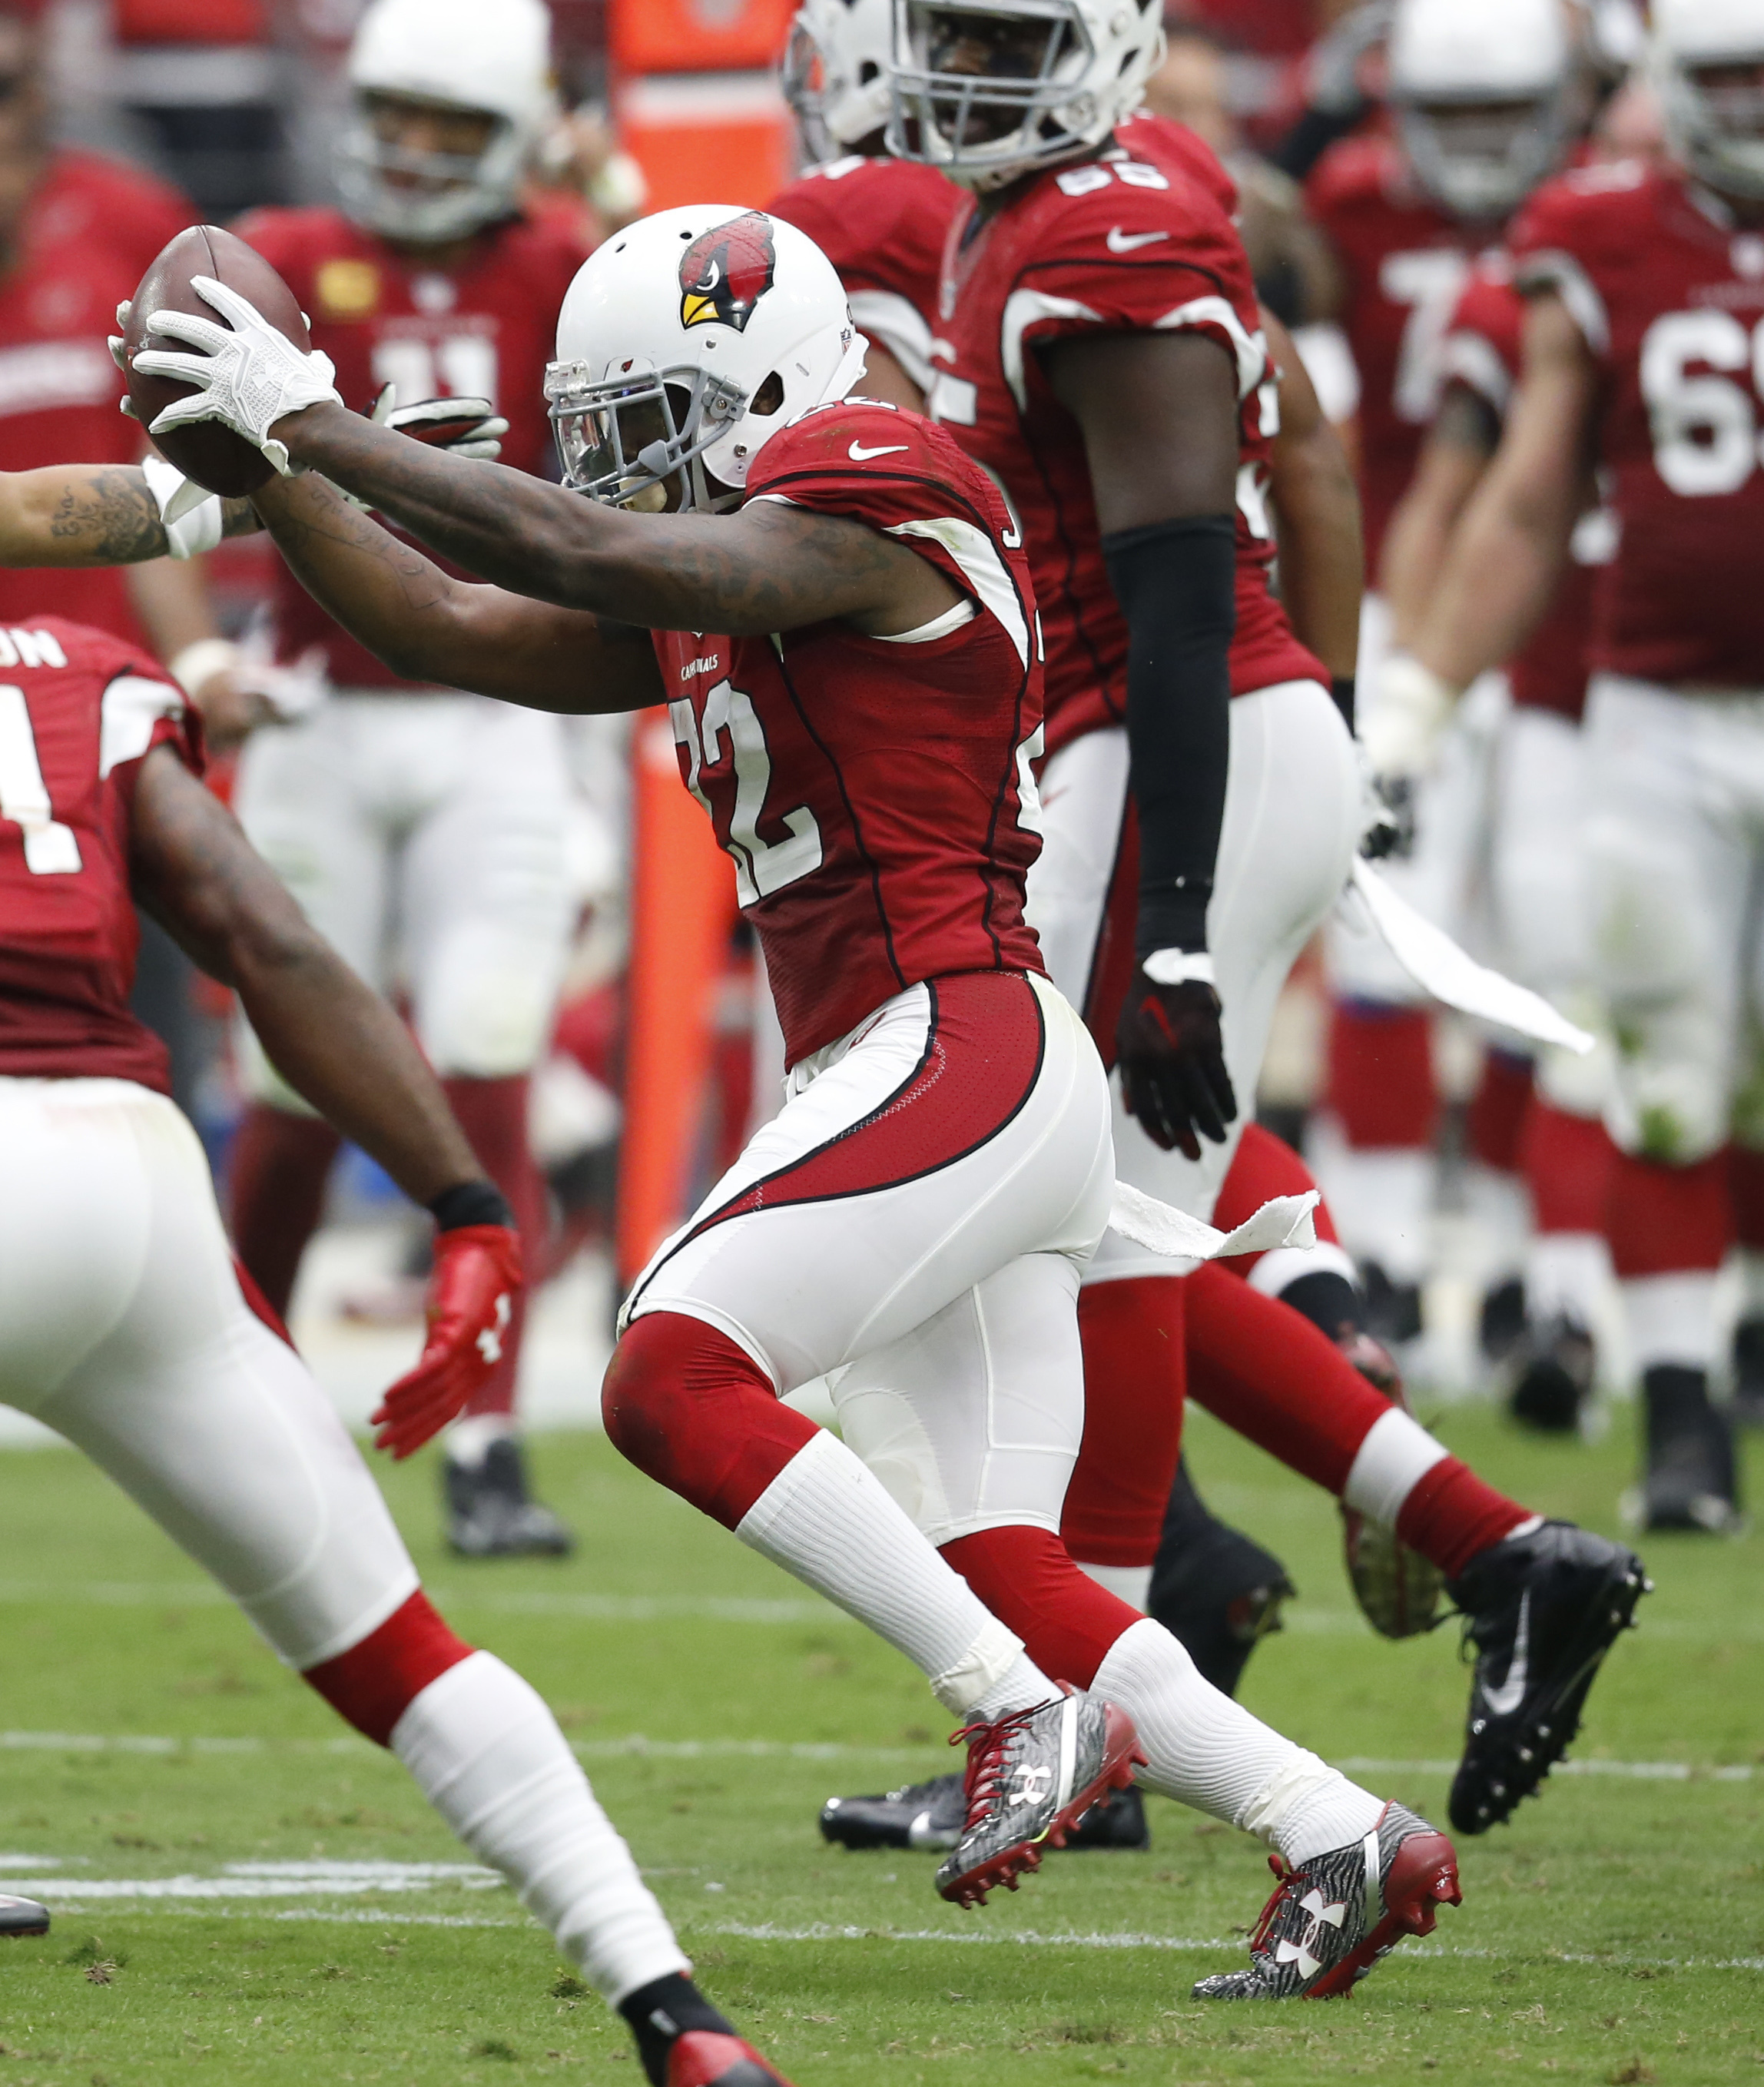 Arizona Cardinals strong safety Tony Jefferson (22) celebrates his fumble recovery against the Tampa Bay Buccaneers during the first half of an NFL football game, Sunday, Sept. 18, 2016, in Glendale, Ariz. (AP Photo/Ross D. Franklin)